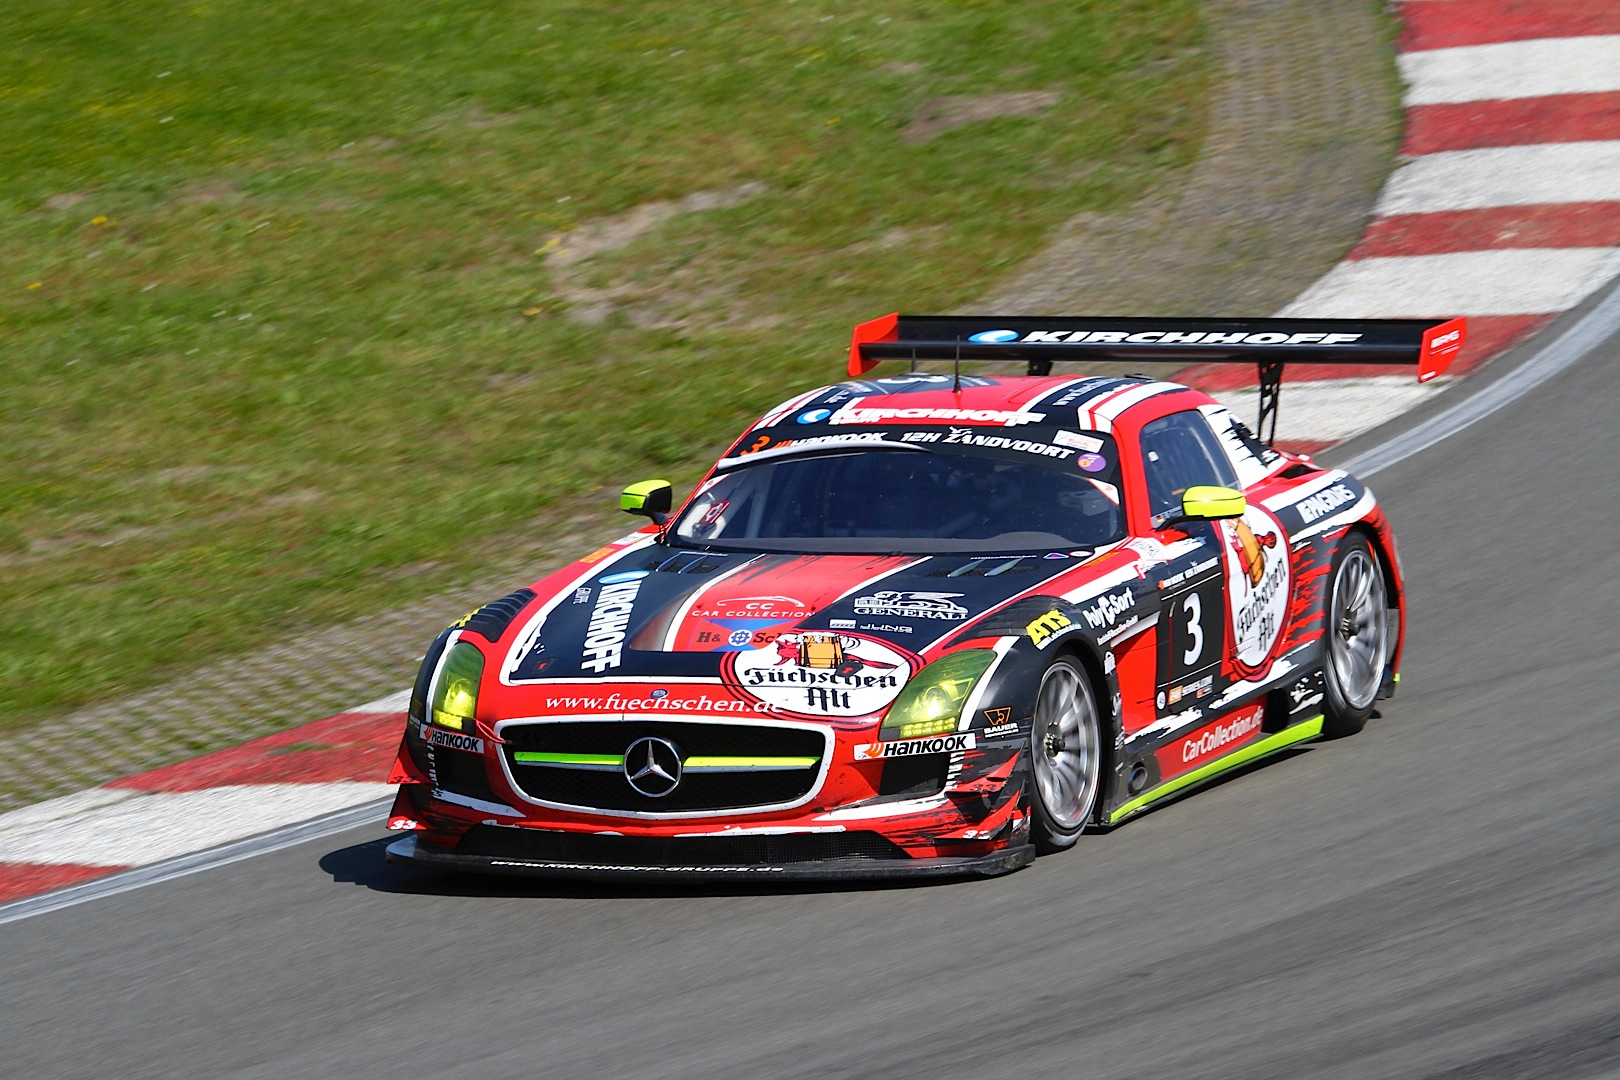 Sls amg gt3 models fill podium at zandvoort 12 hour race for Mercedes benz race